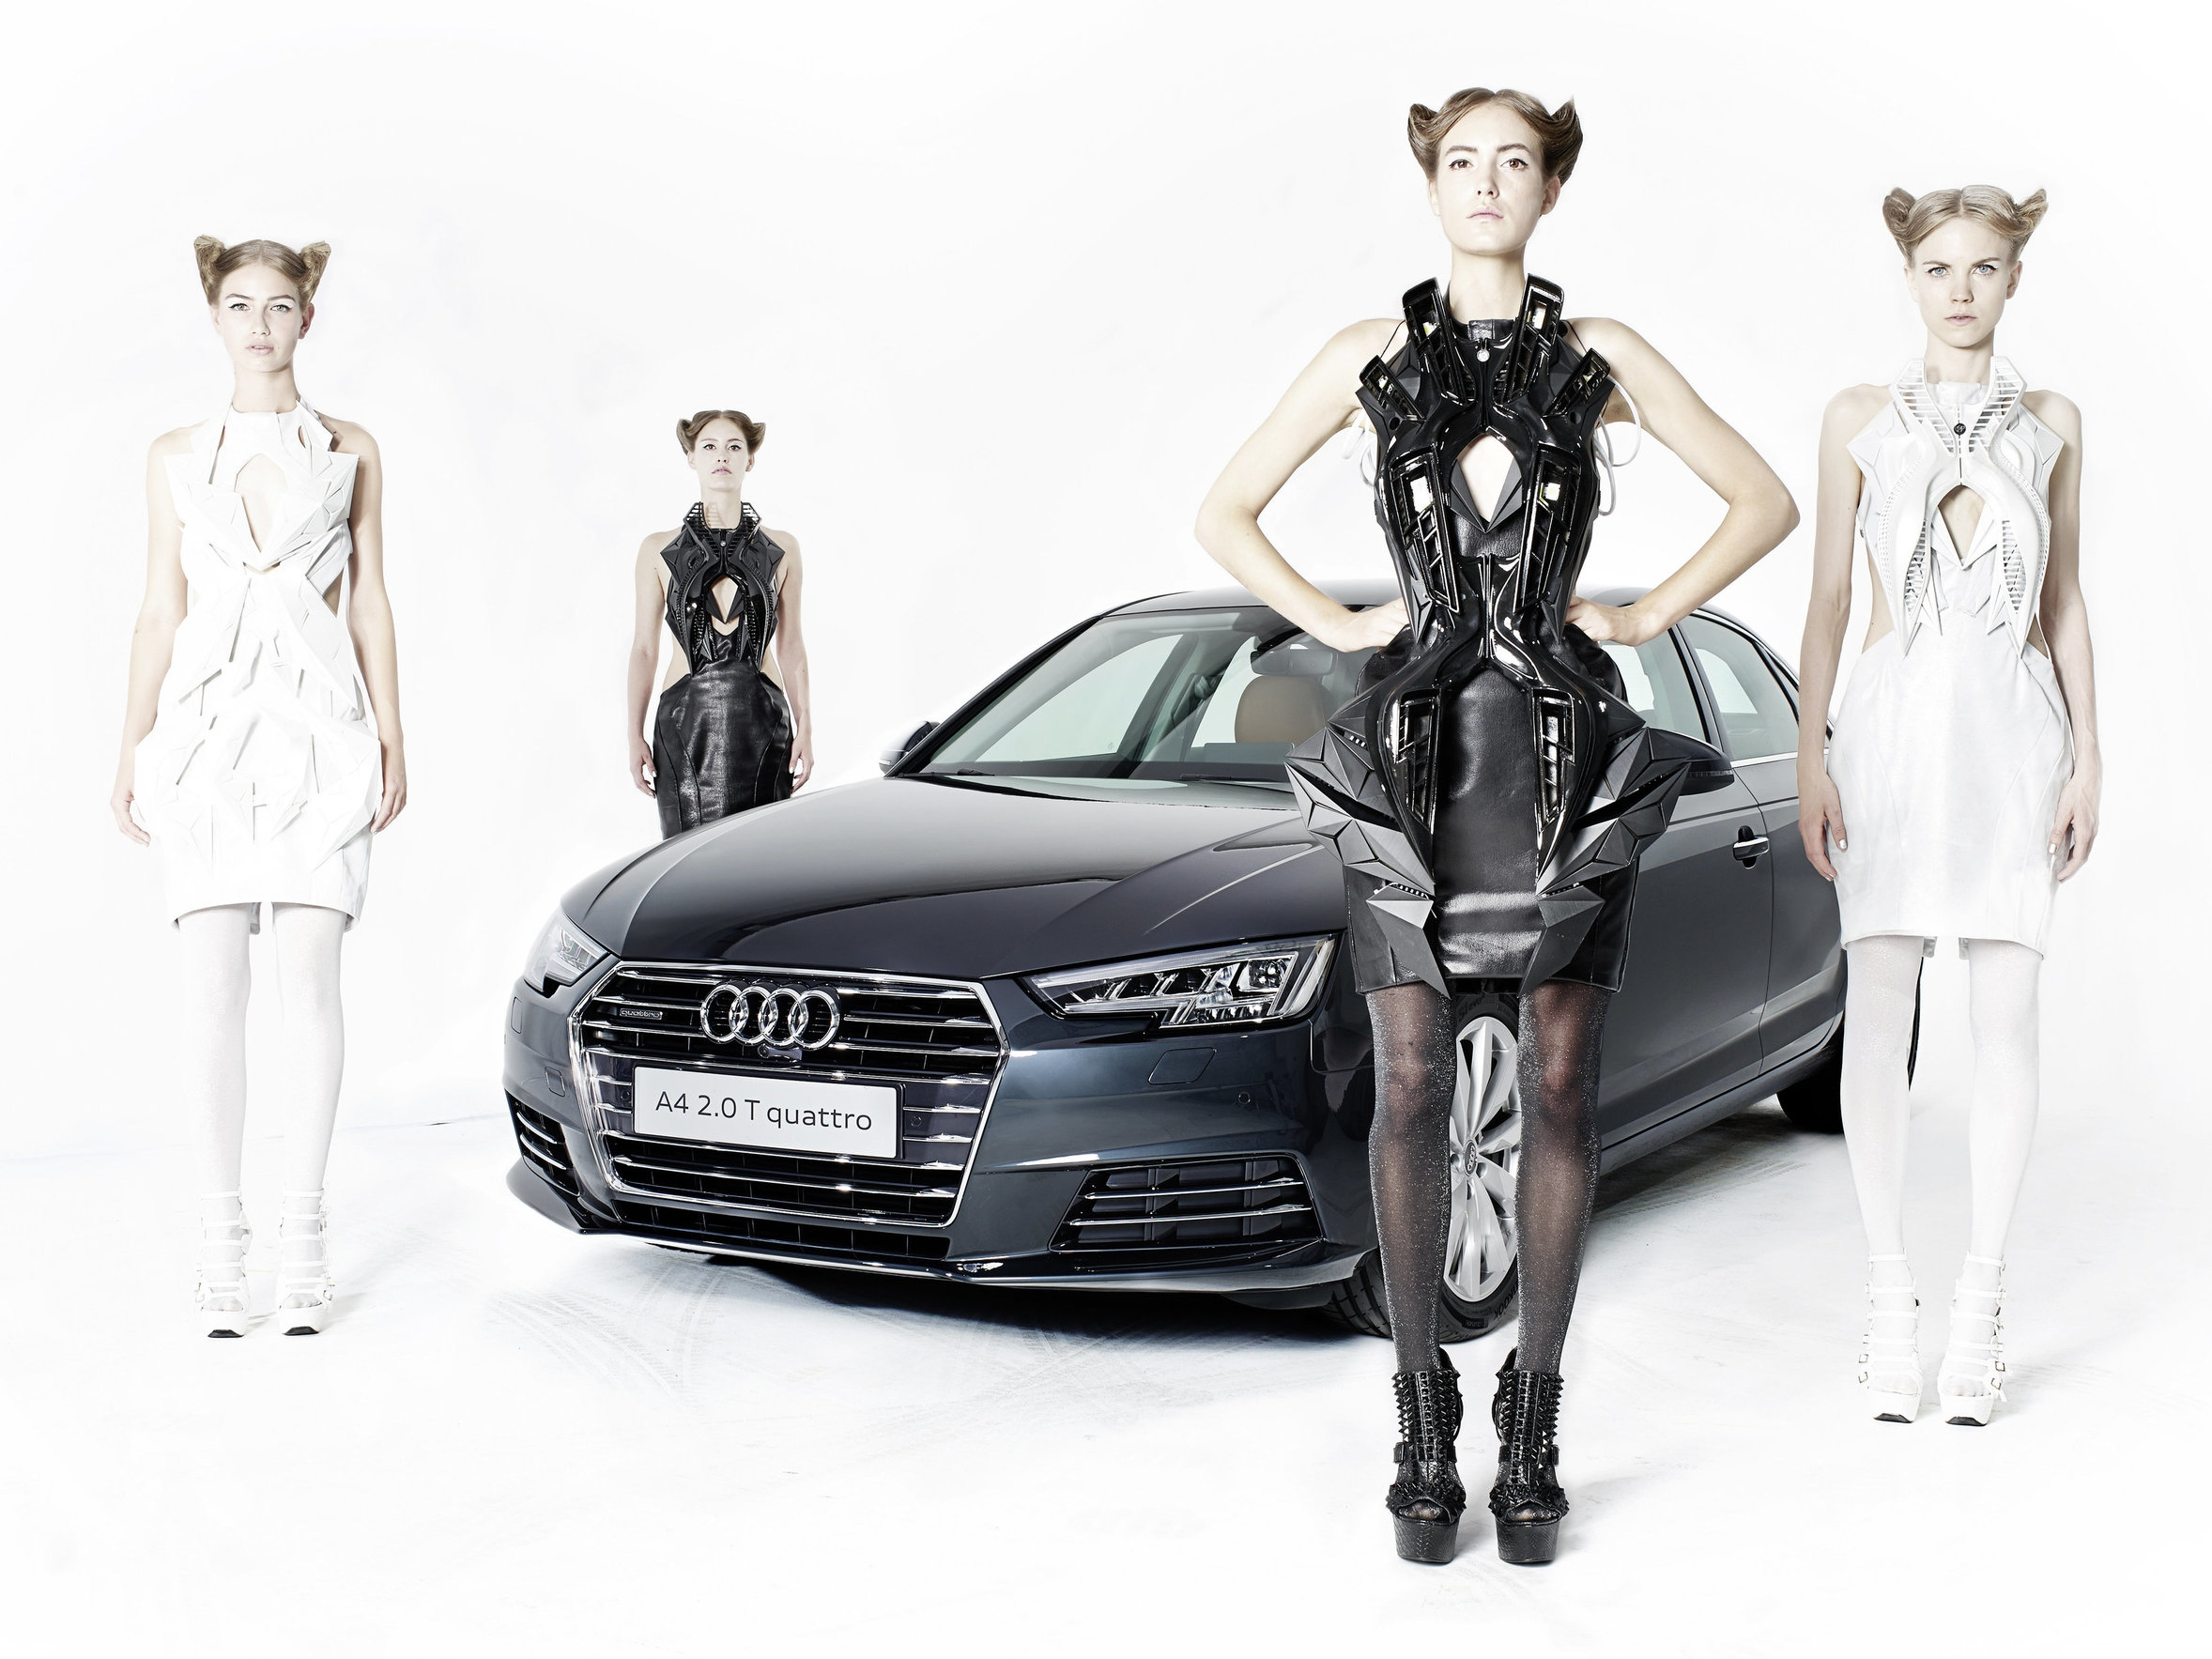 2016-audi-a4-joins-3d-printed-dresses-that-move-or-make-smoke-in-berlin-video-photo-gallery-97661_1.jpg